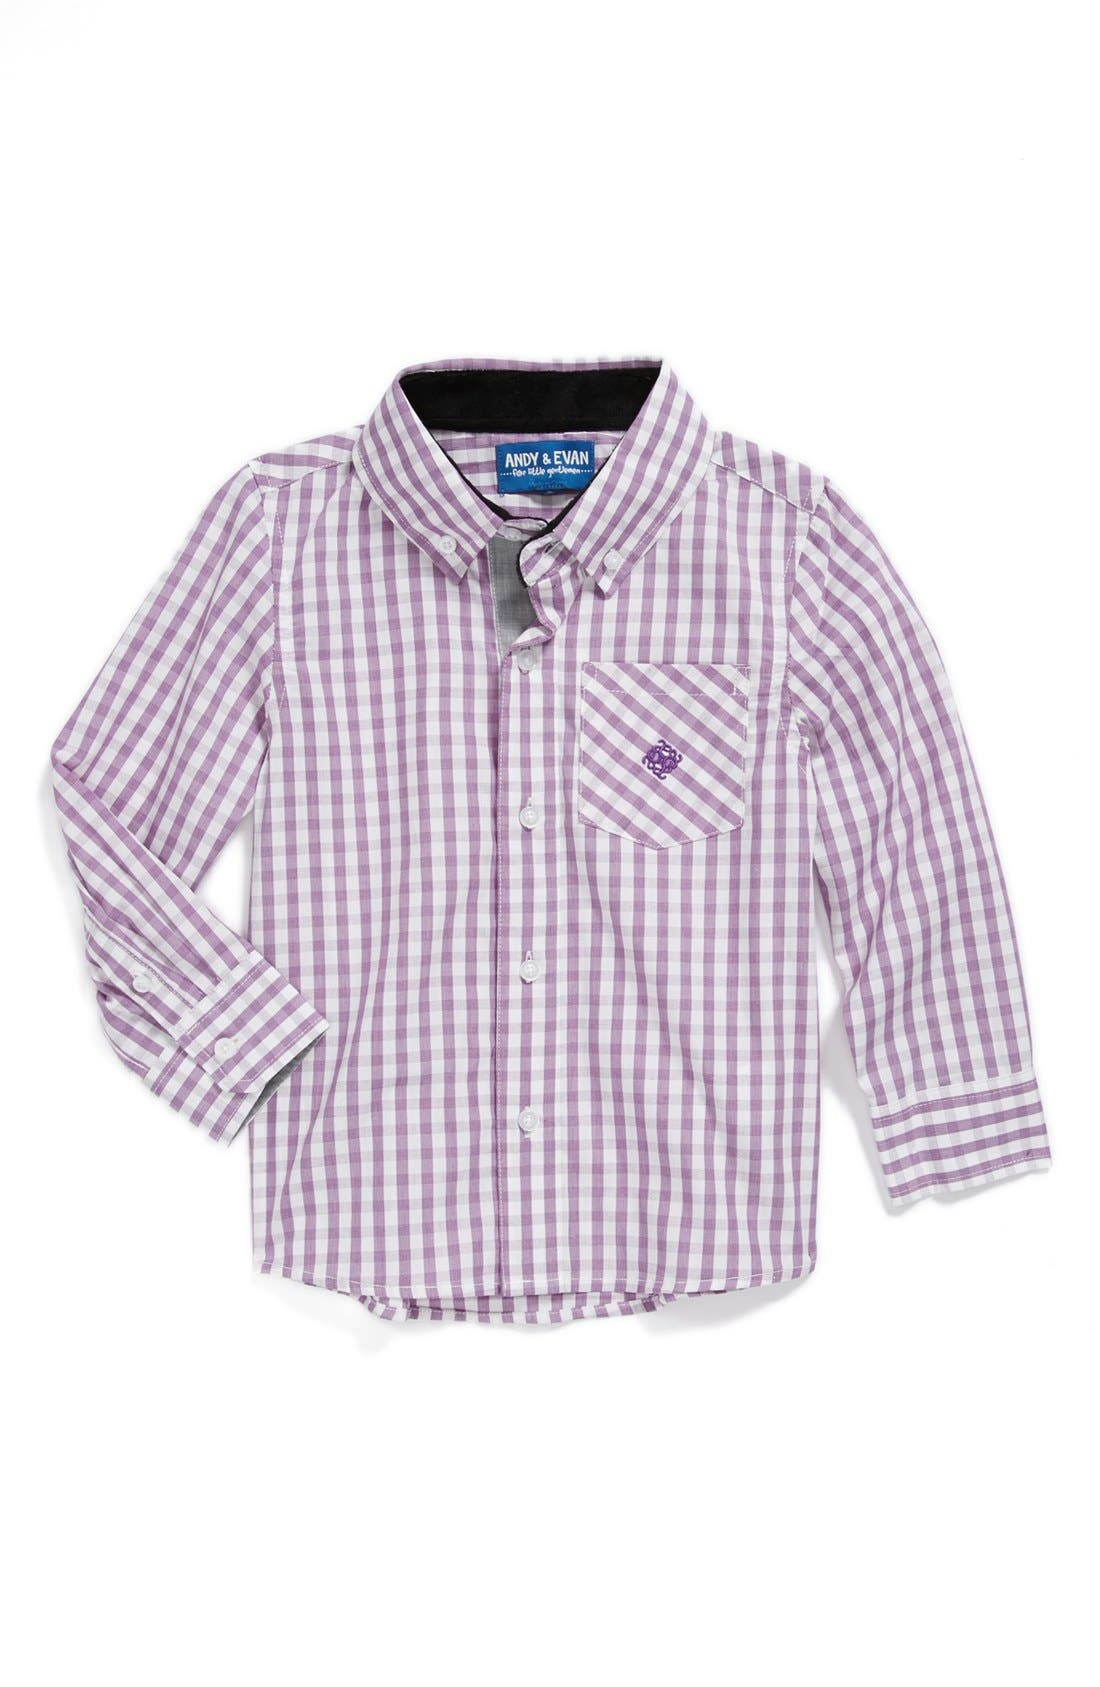 Alternate Image 1 Selected - Andy & Evan for little gentlemen Woven Sport Shirt (Toddler Boys)